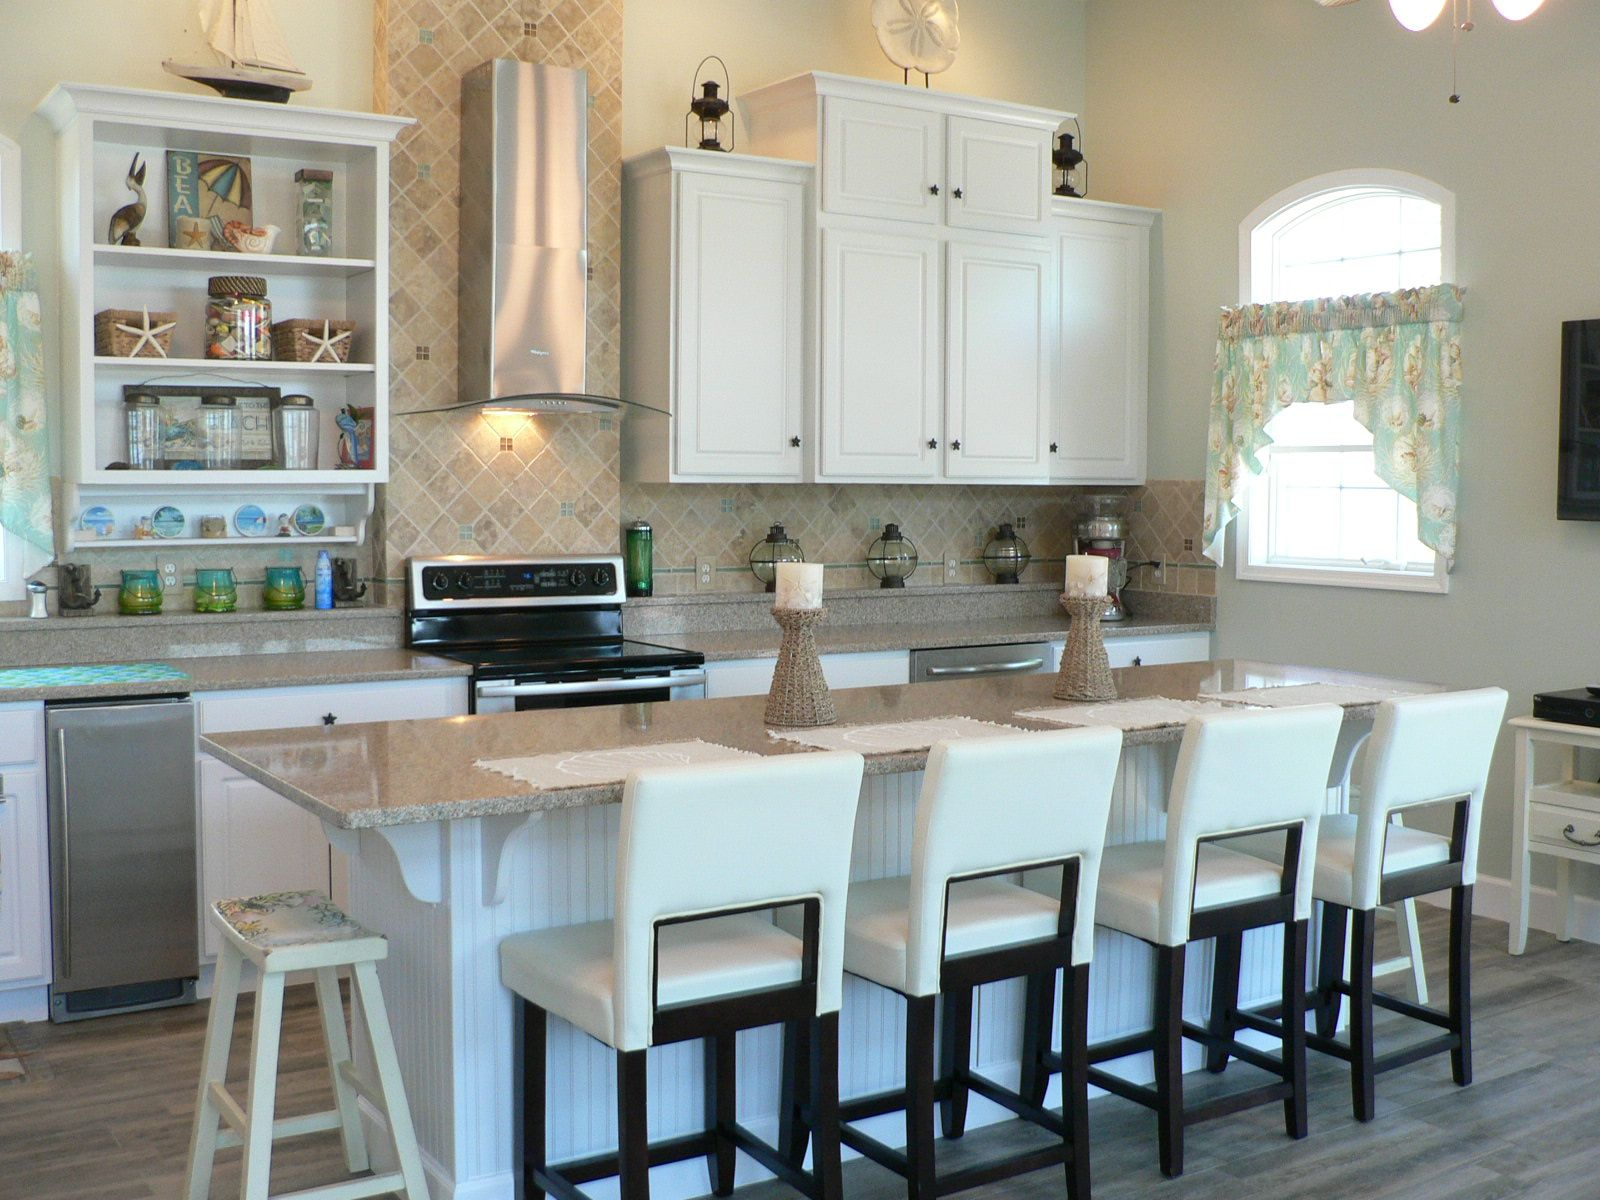 Expanded Pool House Kitchen Island Replaces What Was Originally A Peninsula With More Seating Options Great A Kitchen Design Home Kitchens Kitchen And Bath